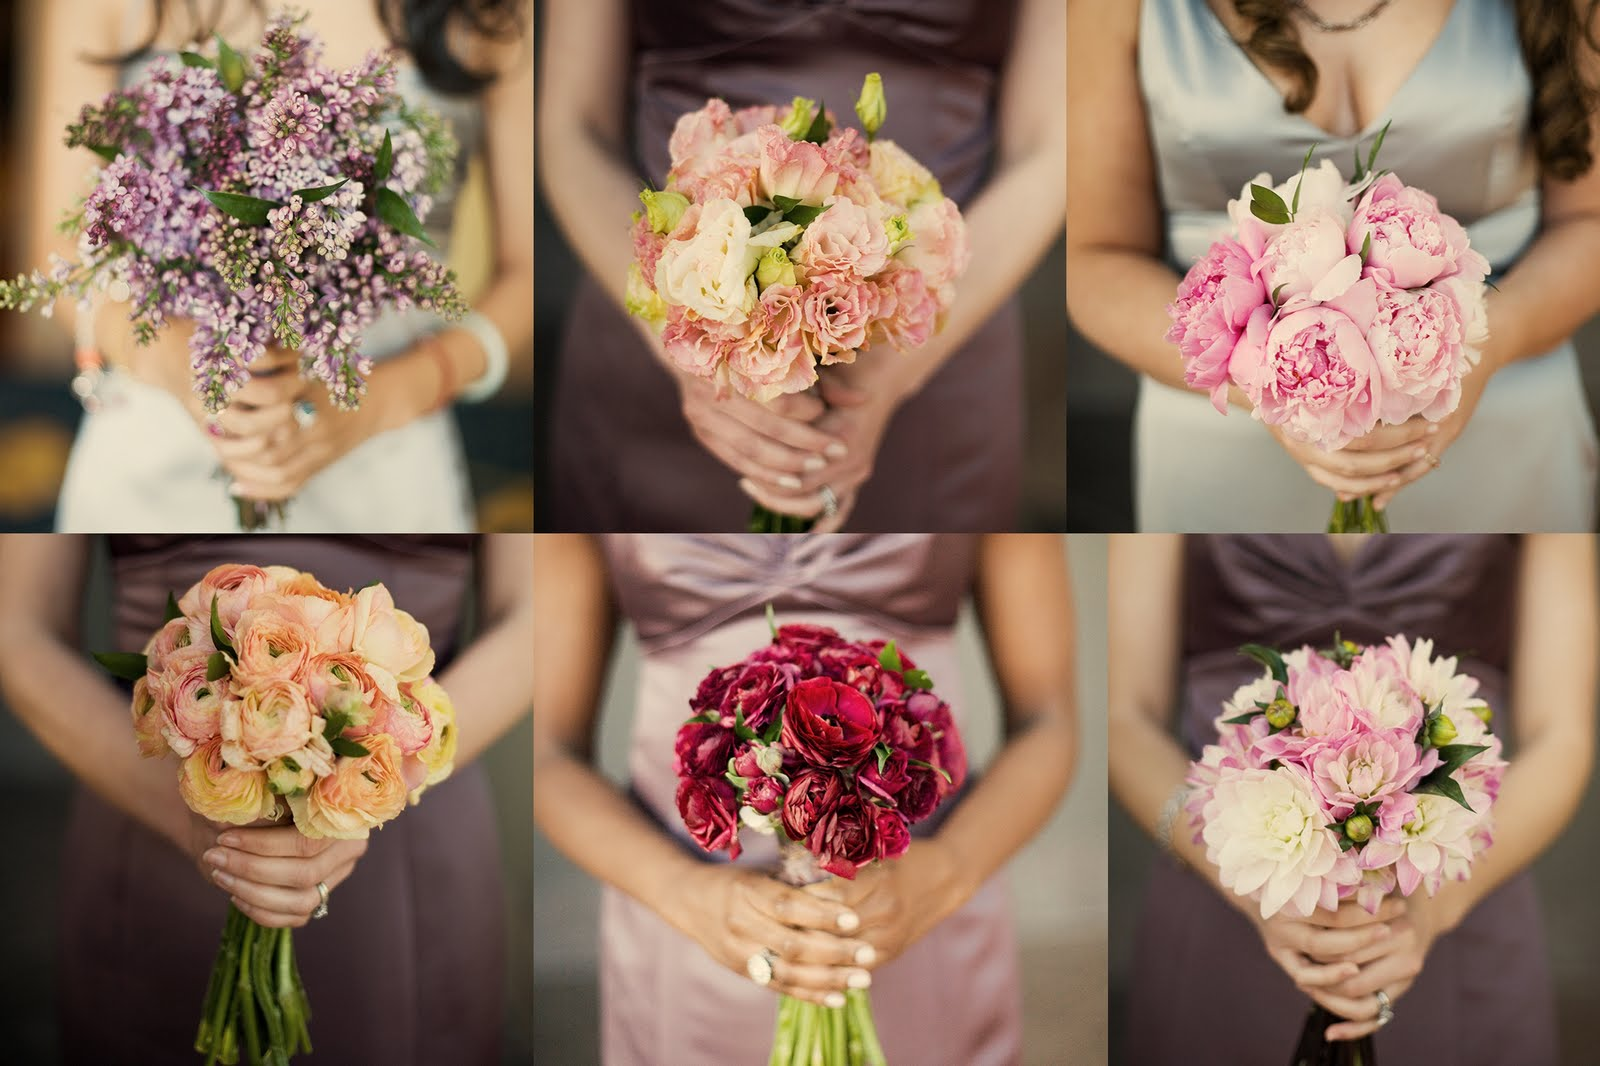 Wedding flower trends mismatched bridesmaid bouquets mismatched bridesmaid bouquets izmirmasajfo